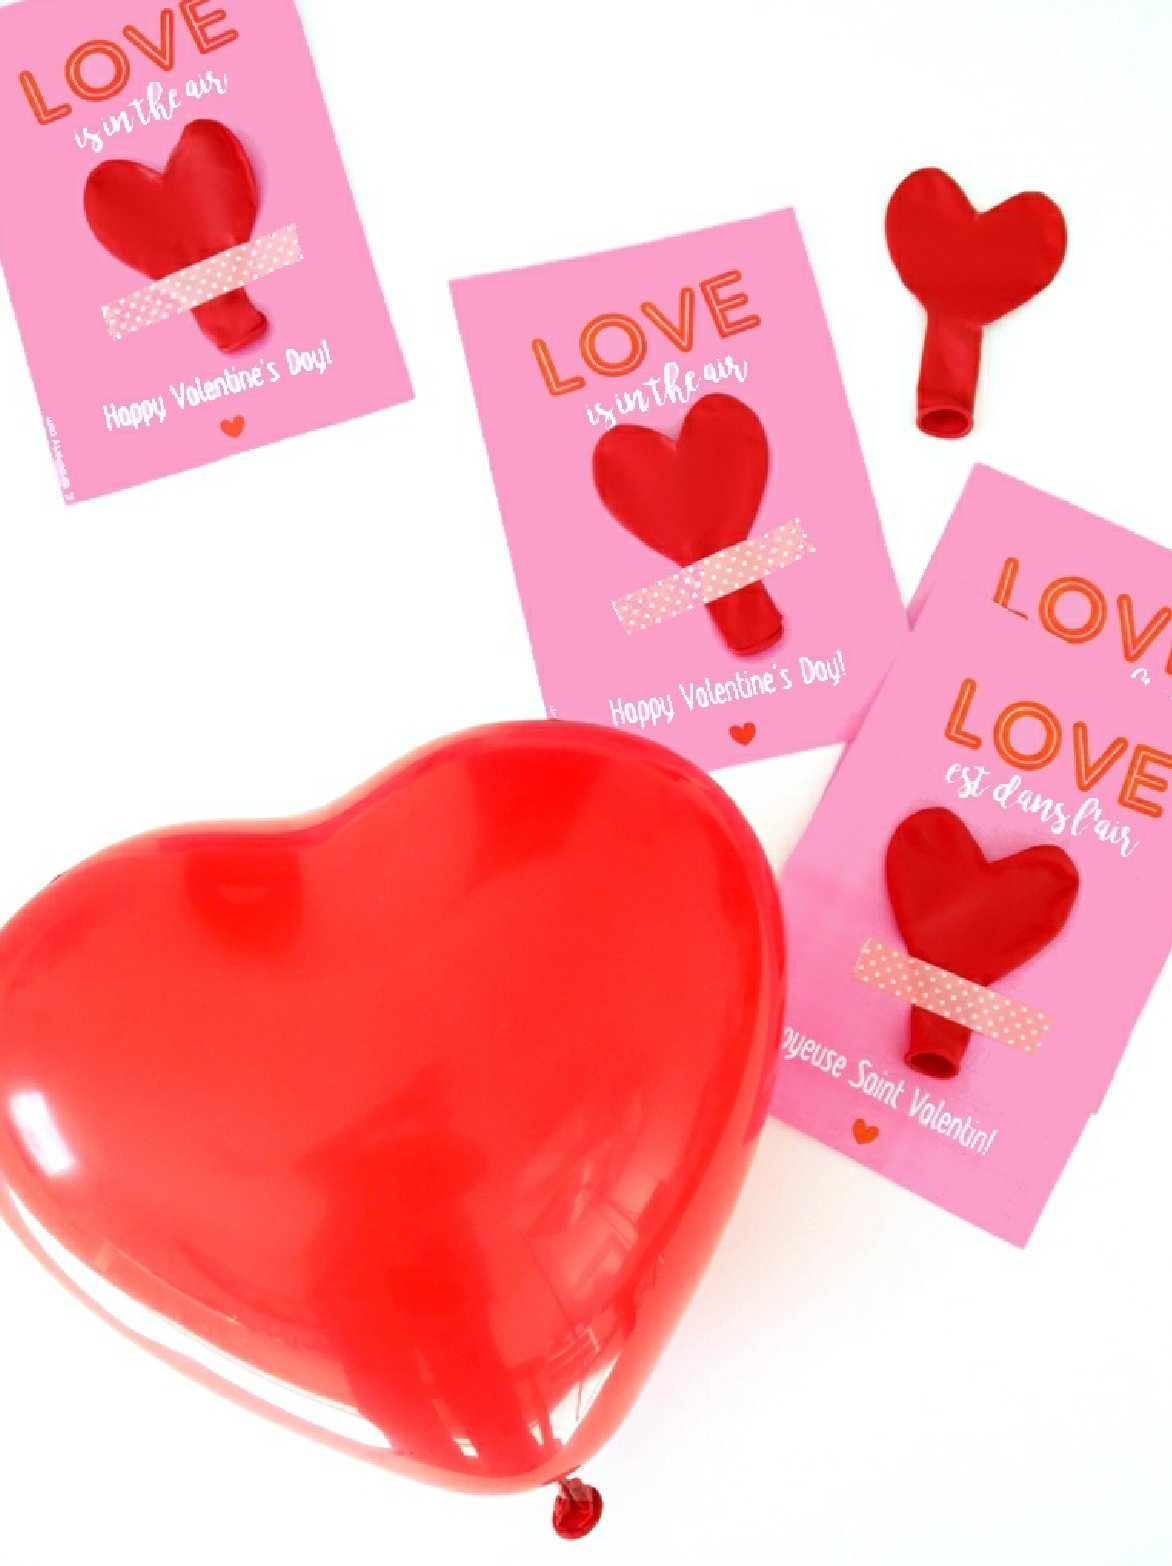 DIY Valentine's Balloon Party Favors with Free Printables